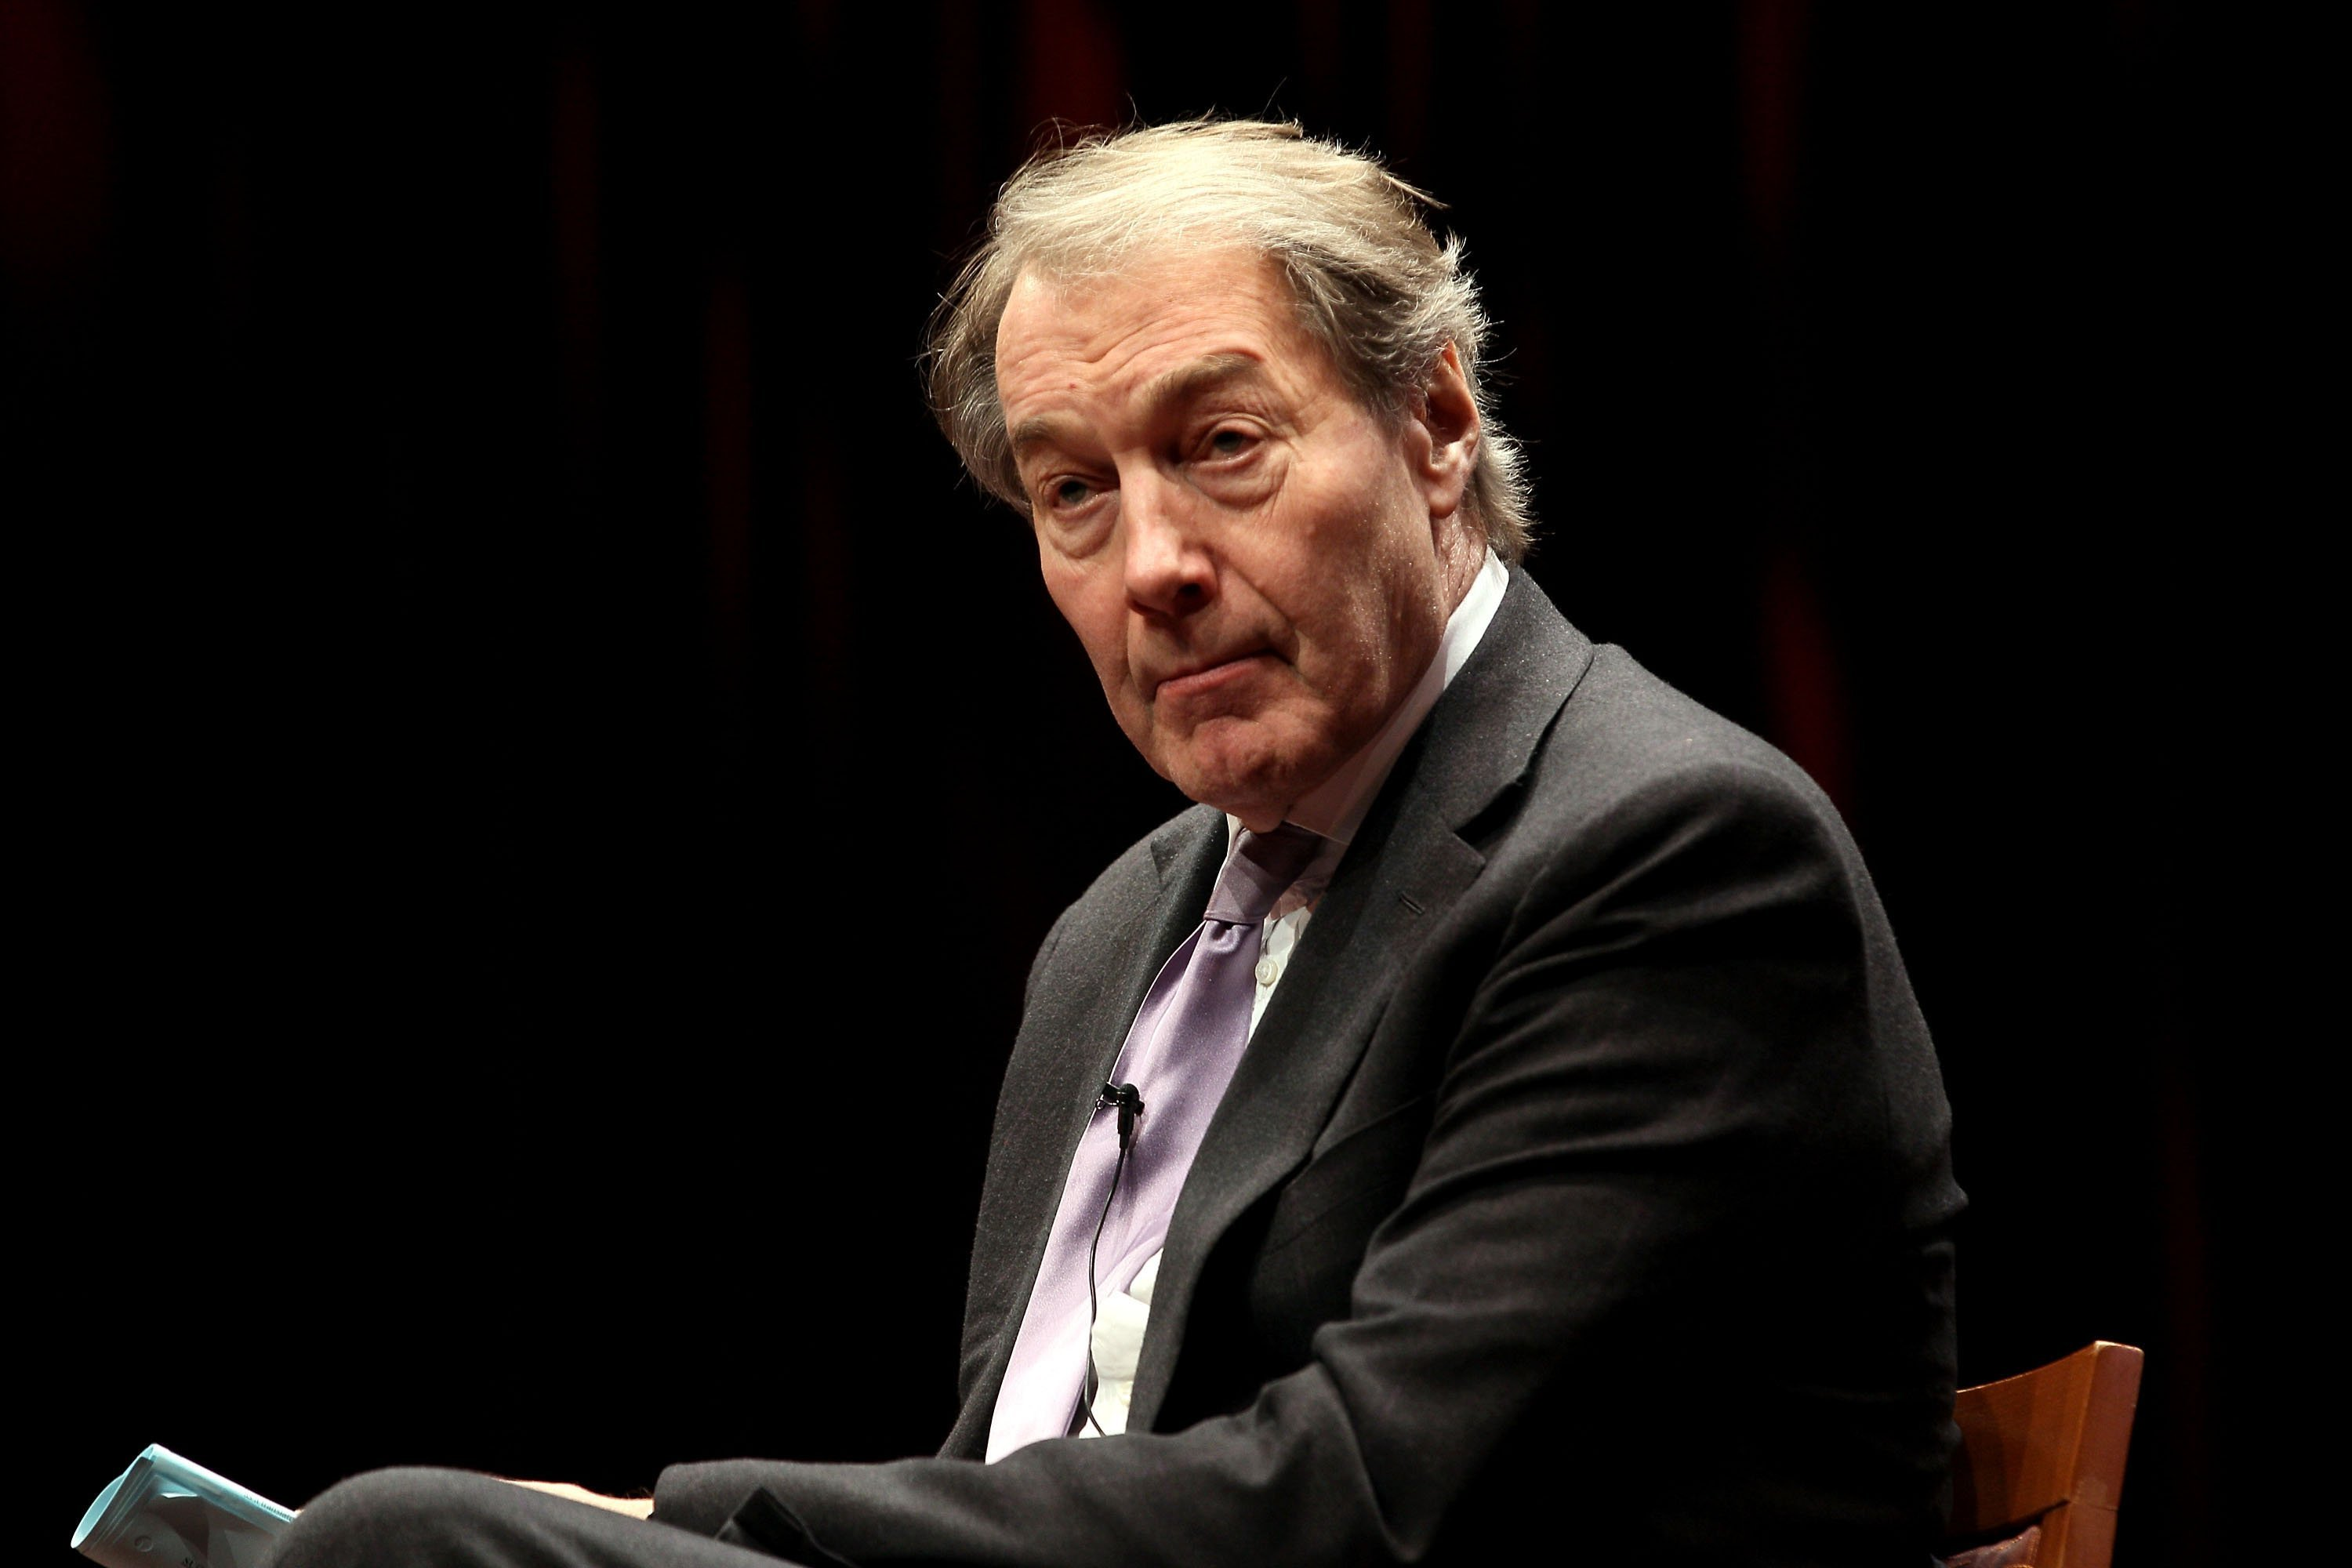 Charlie Rose sued for sexual harassment by former makeup artist